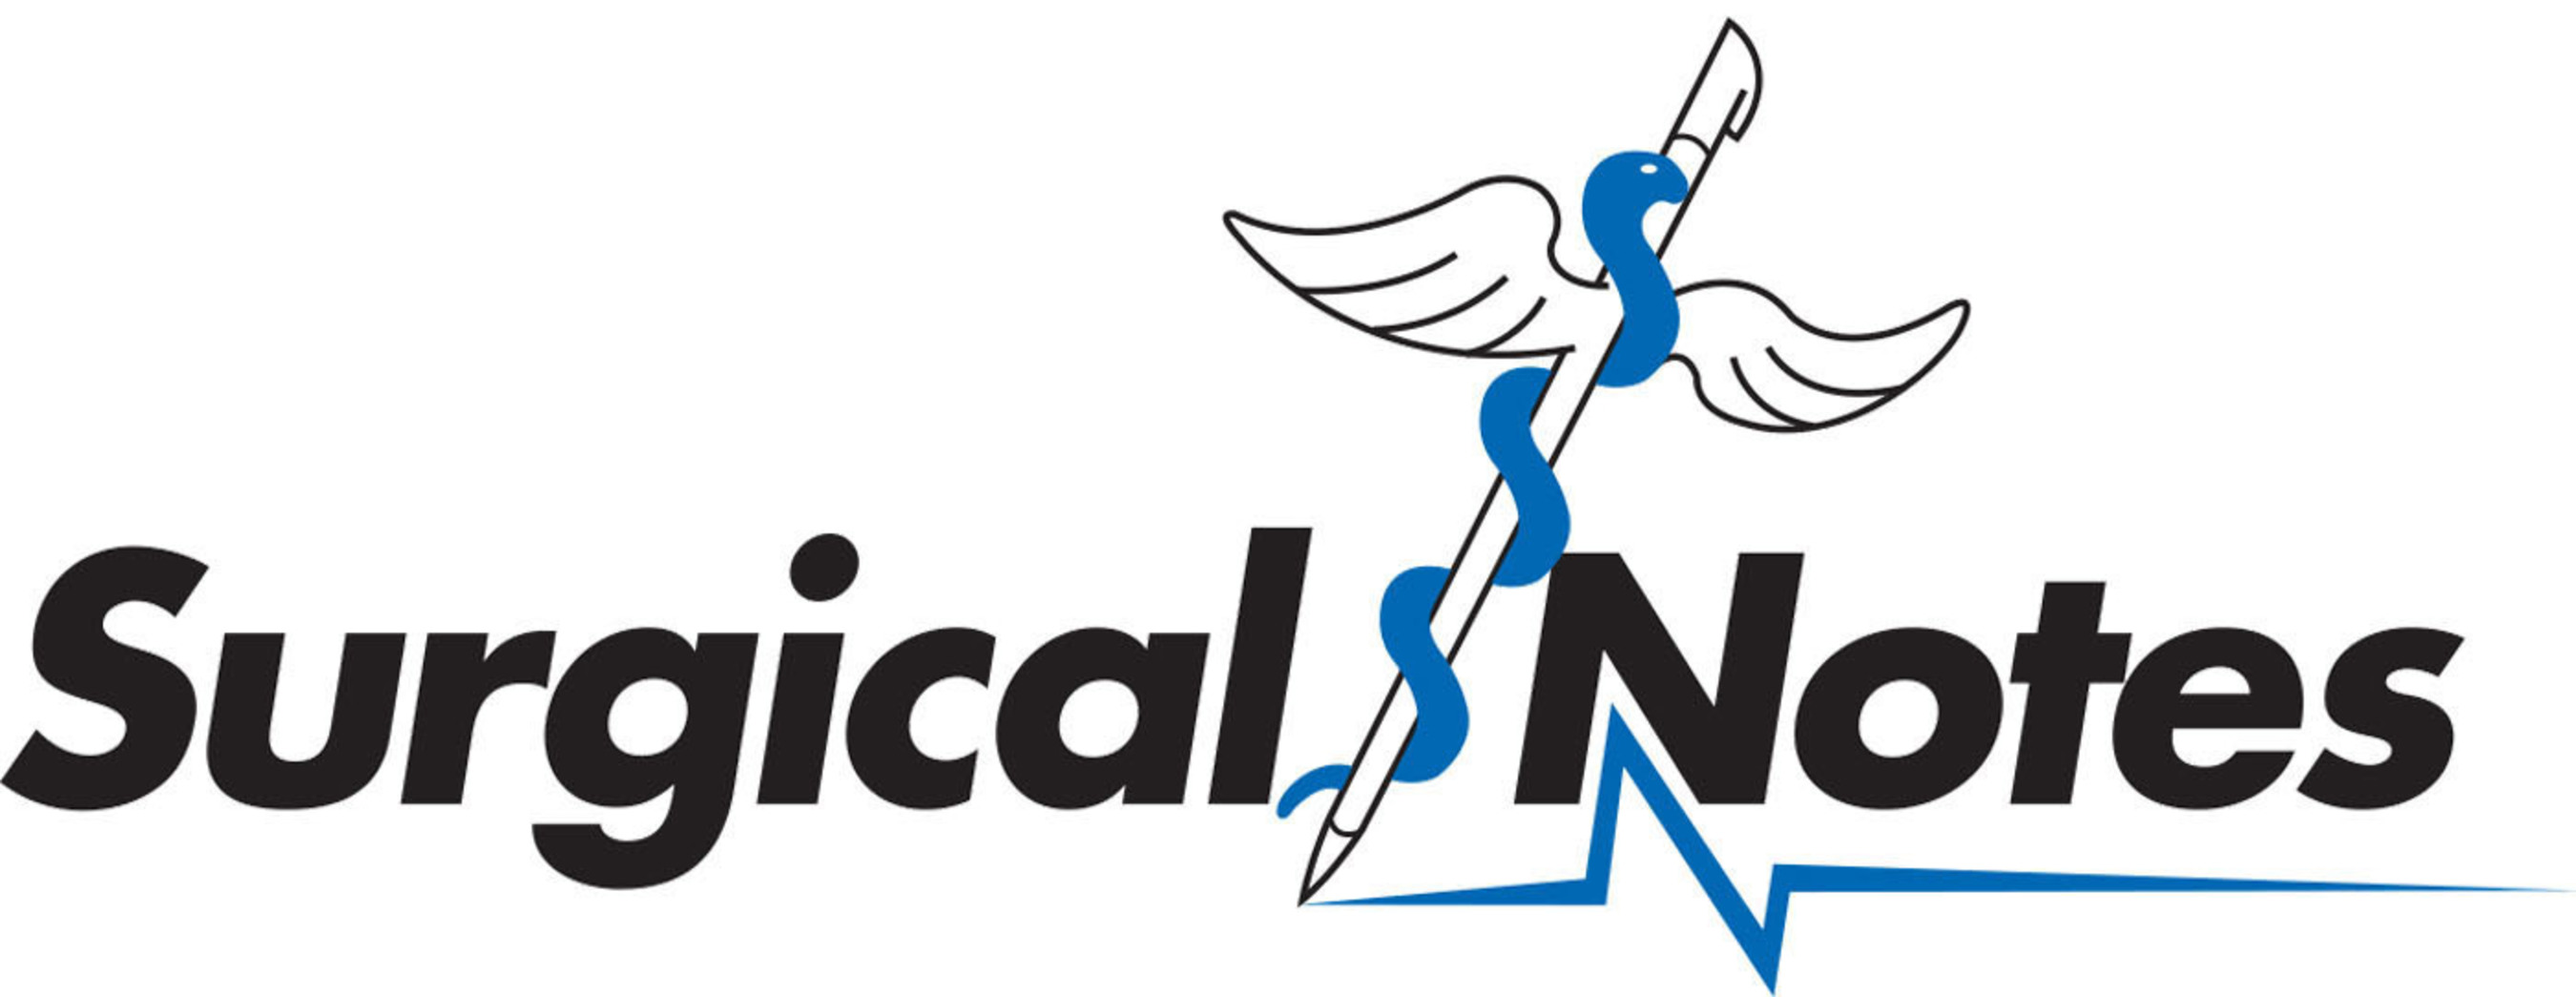 Surgical Notes, Inc. is a preeminent nationwide provider of transcription, coding and other related information technology services for the ambulatory surgery center and surgical hospital markets.